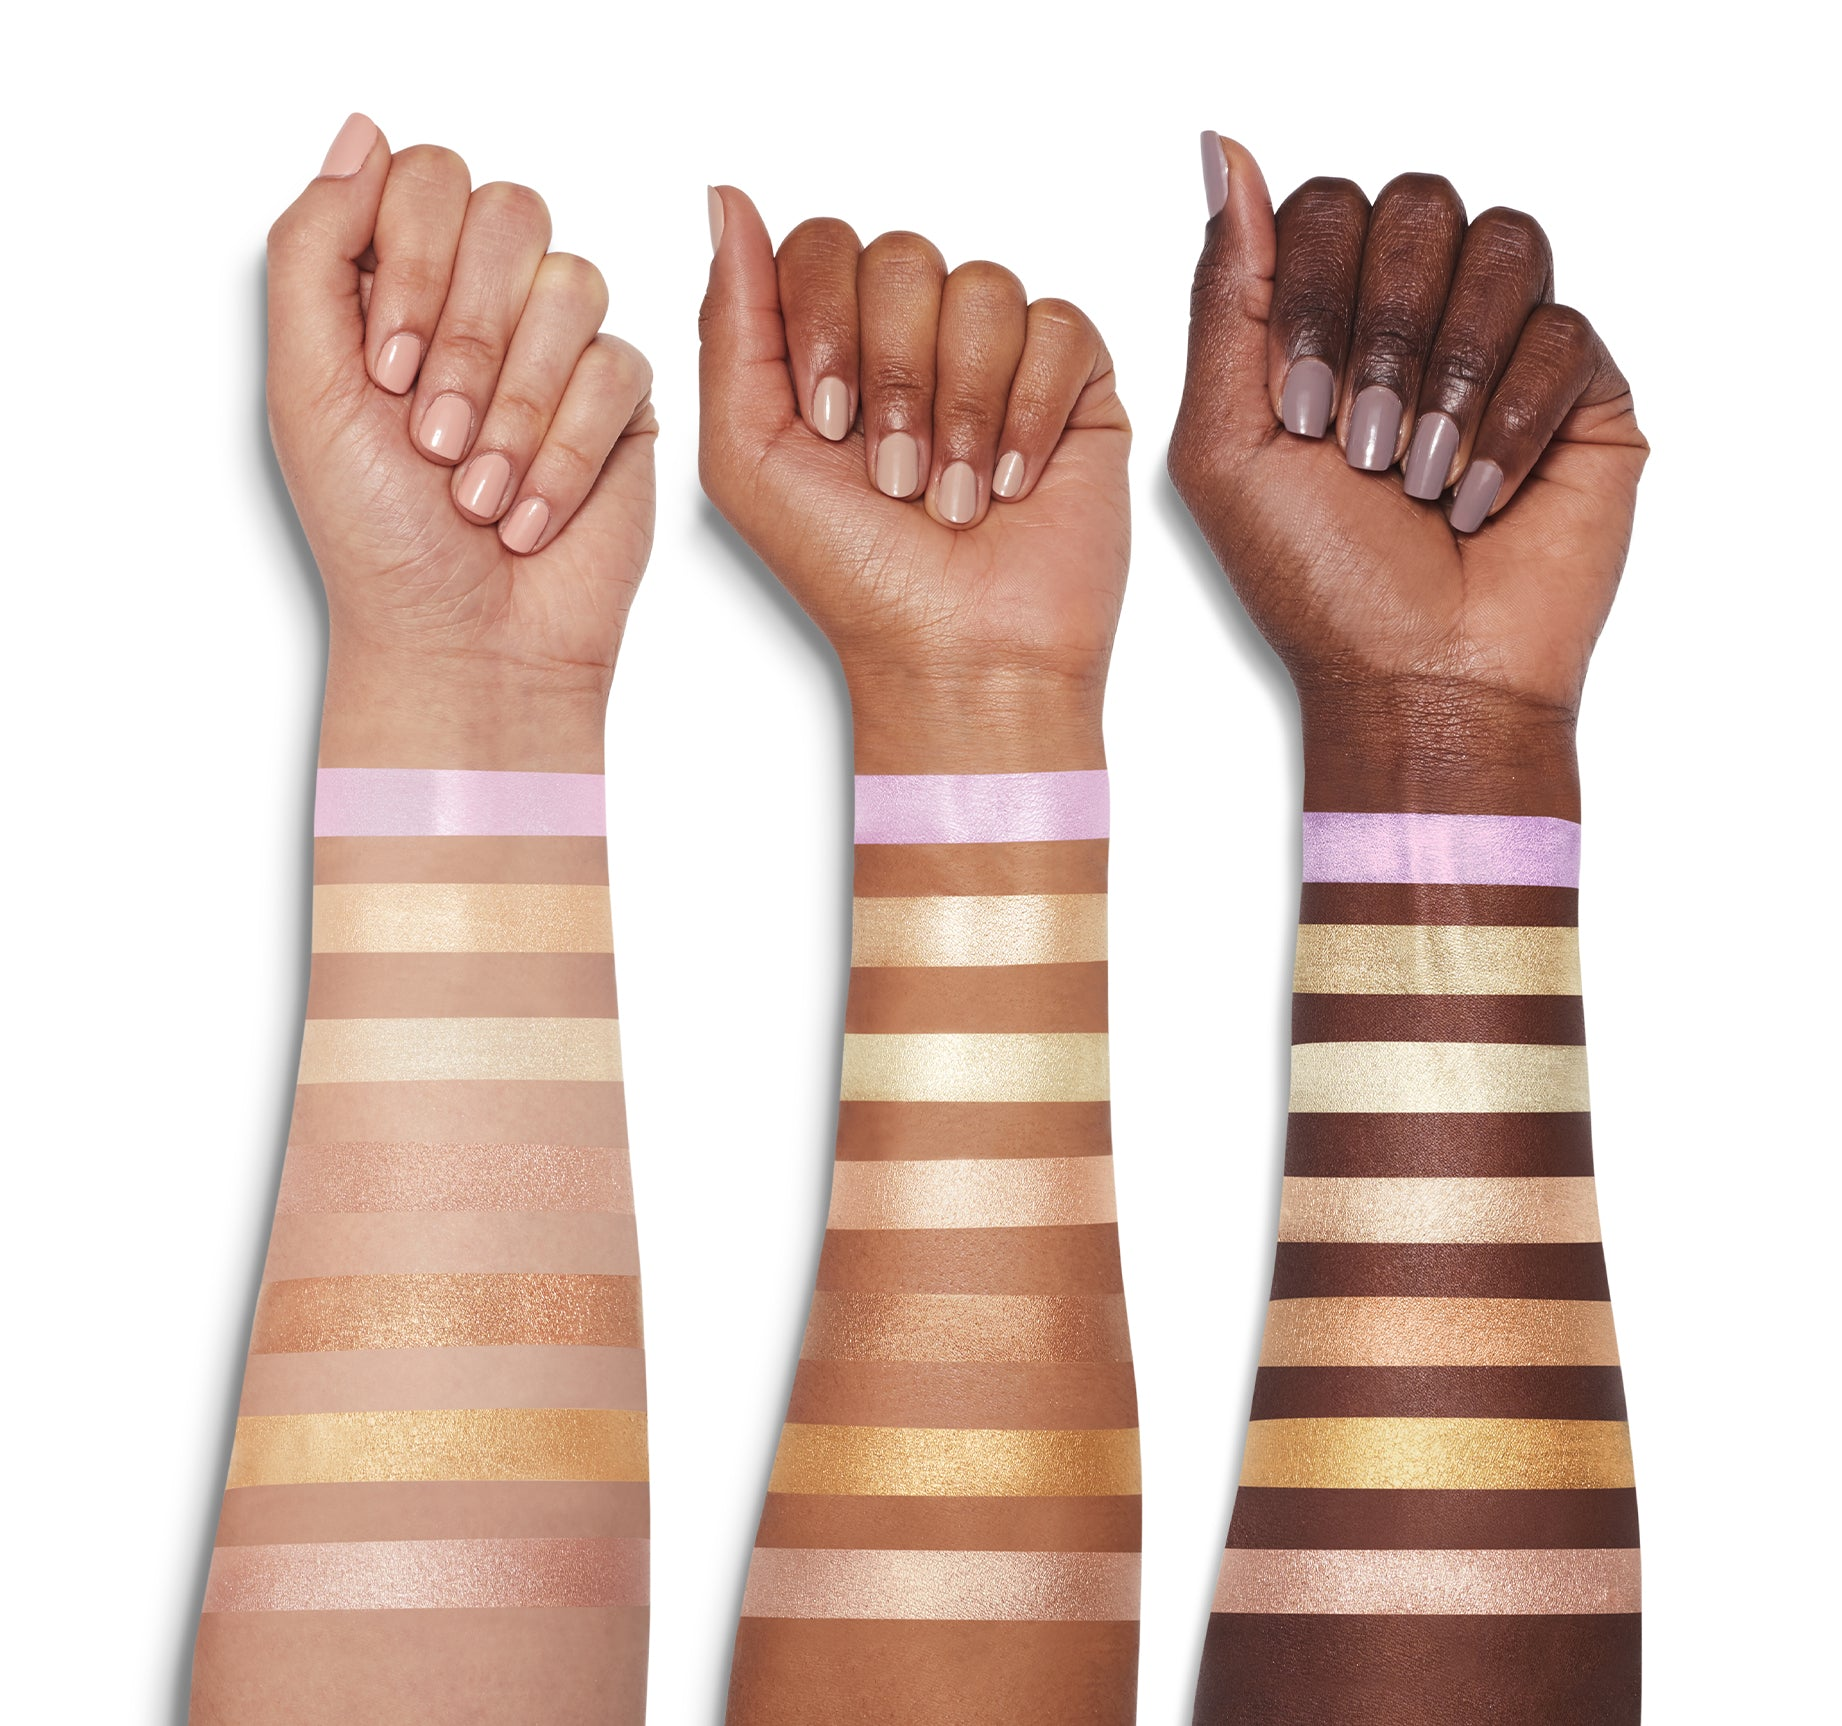 HIGHLIGHTER - LIT ARM SWATCHES, view larger image